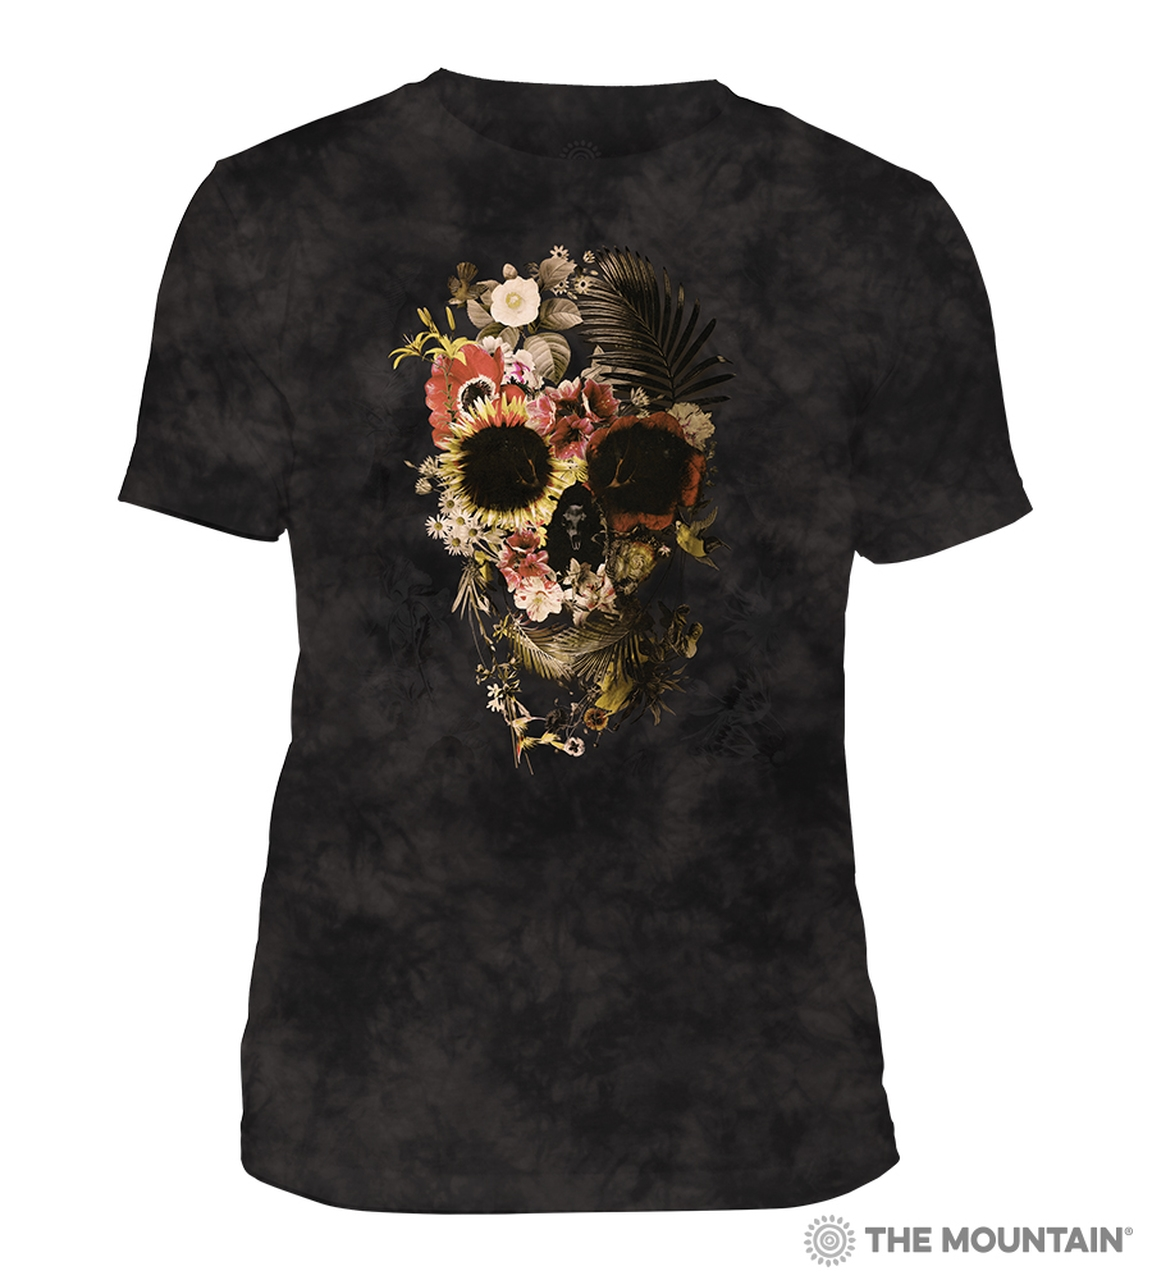 Garden Skull - Black - 54-6330 - Men's Triblend T-shirt